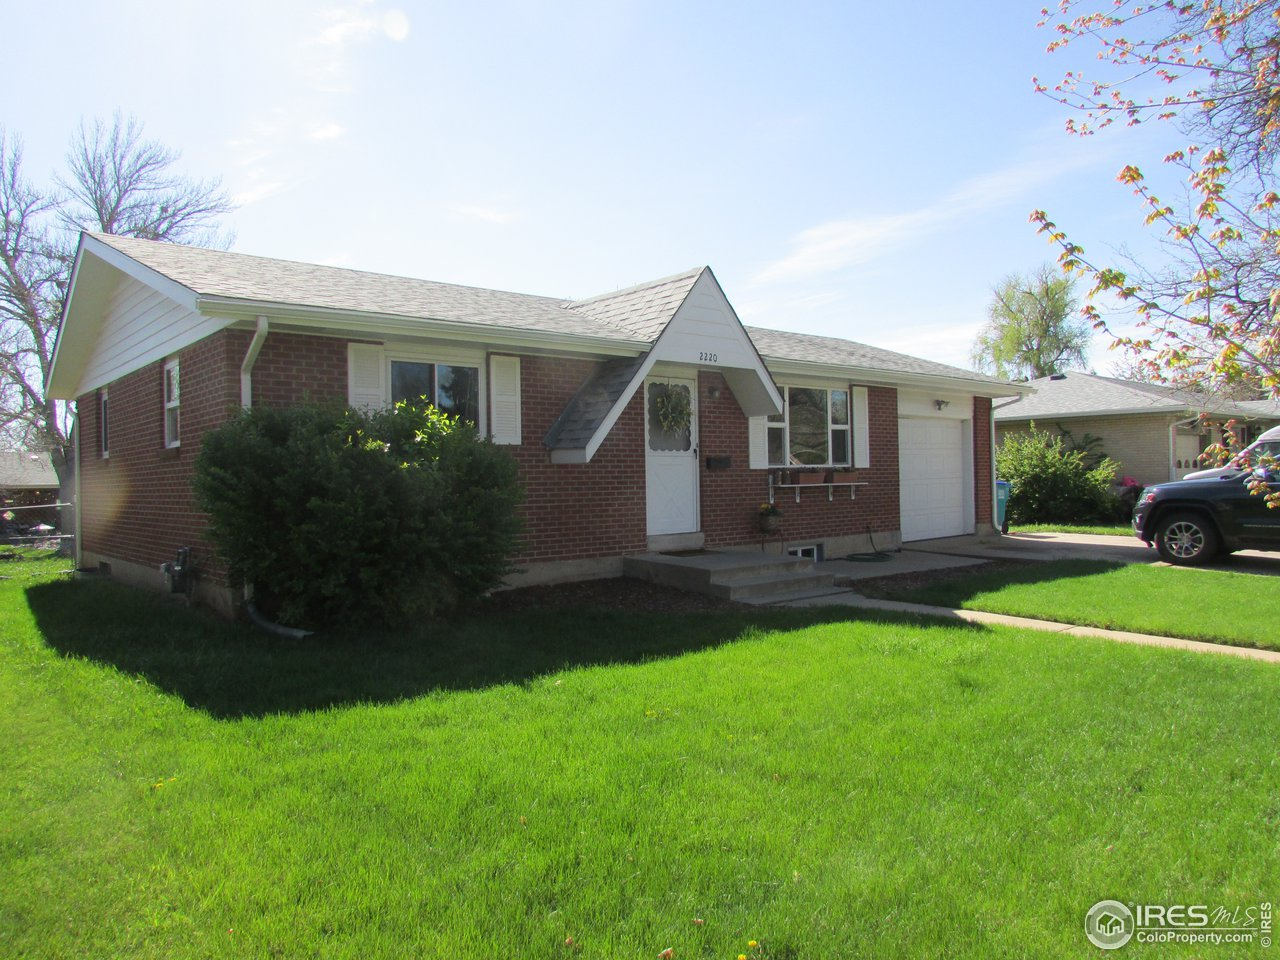 2220 Purdue Rd, Fort Collins CO 80525